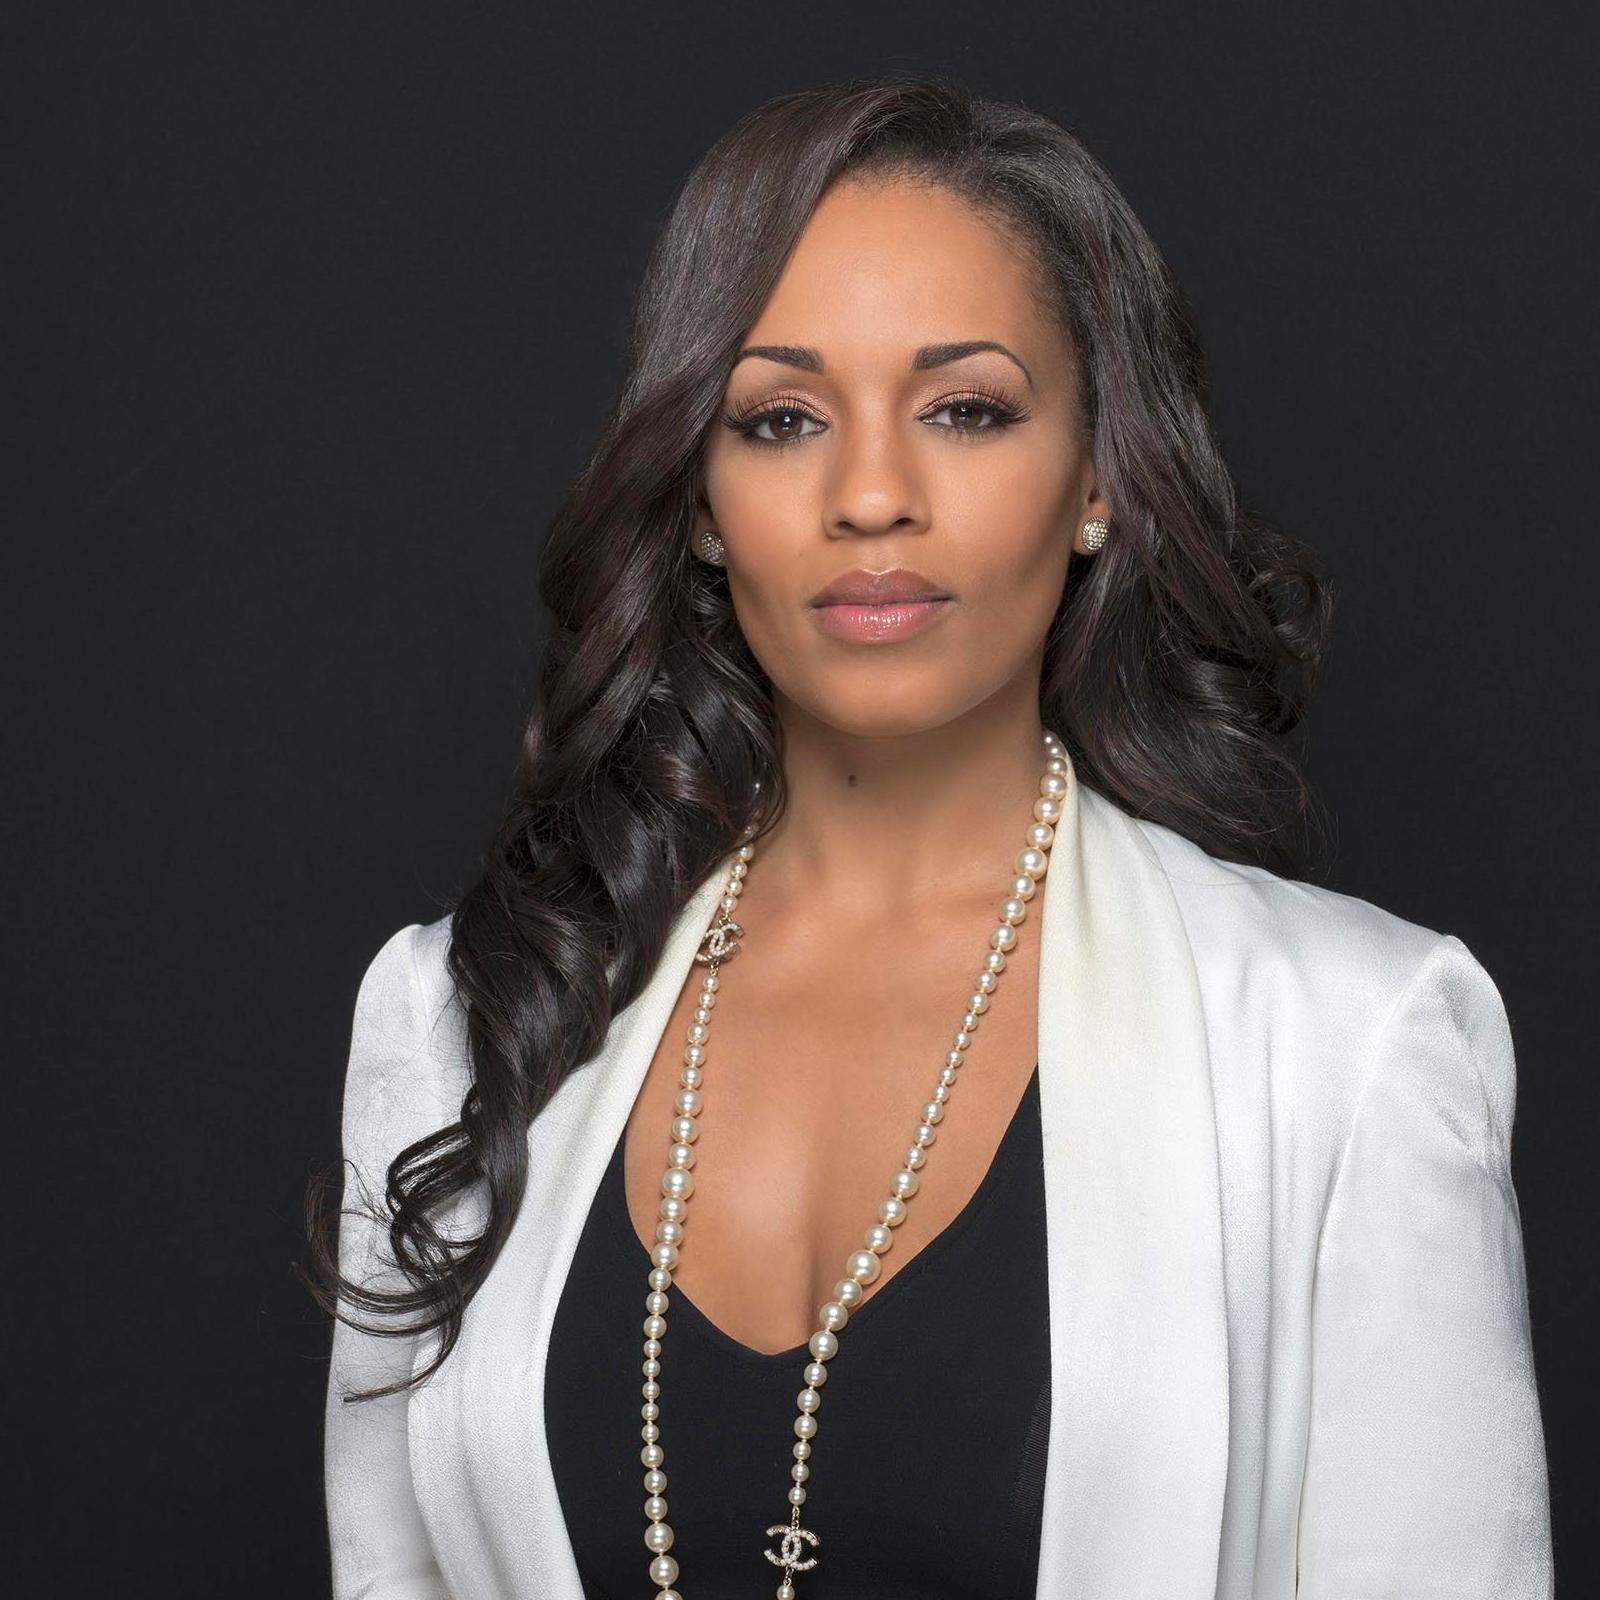 melyssa ford agemelyssa ford forum, melyssa ford age, melyssa ford photoshoot, melyssa ford insta, melyssa ford instagram, melyssa ford, melyssa ford and geneva thomas, melyssa ford wiki, melyssa ford the game, melyssa ford net worth, melyssa ford music videos, melyssa ford boyfriend, melyssa ford real estate, melyssa ford fight, melyssa ford twitter